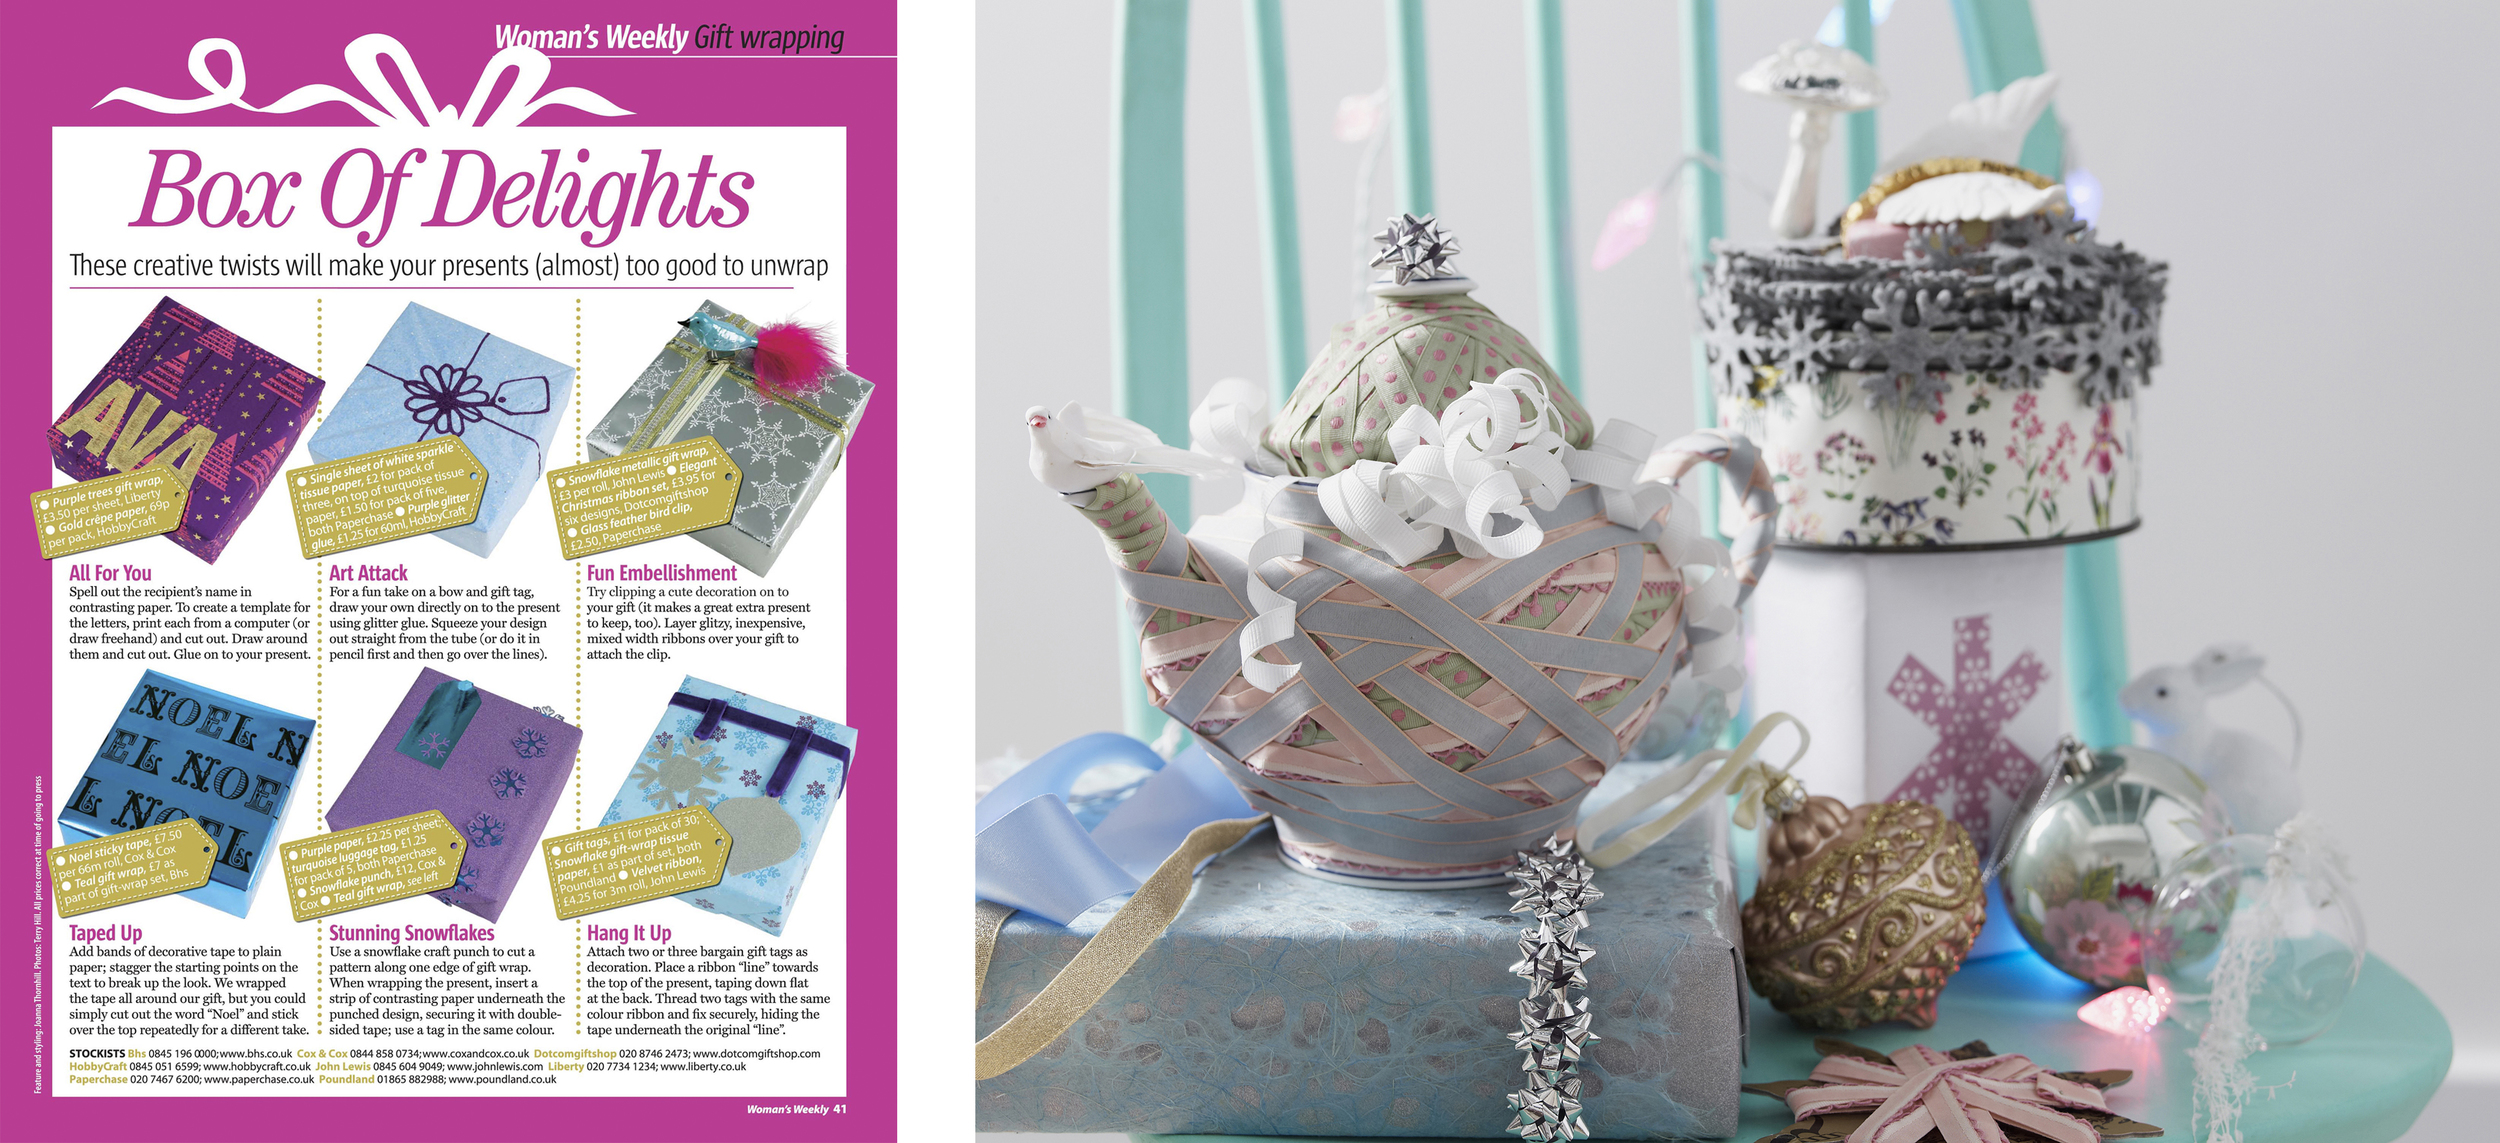 18b. Heart Home magazine Wrapped Gifts Pastel Christmas Tree by Interior Stylist Joanna Thornhill copy.jpg